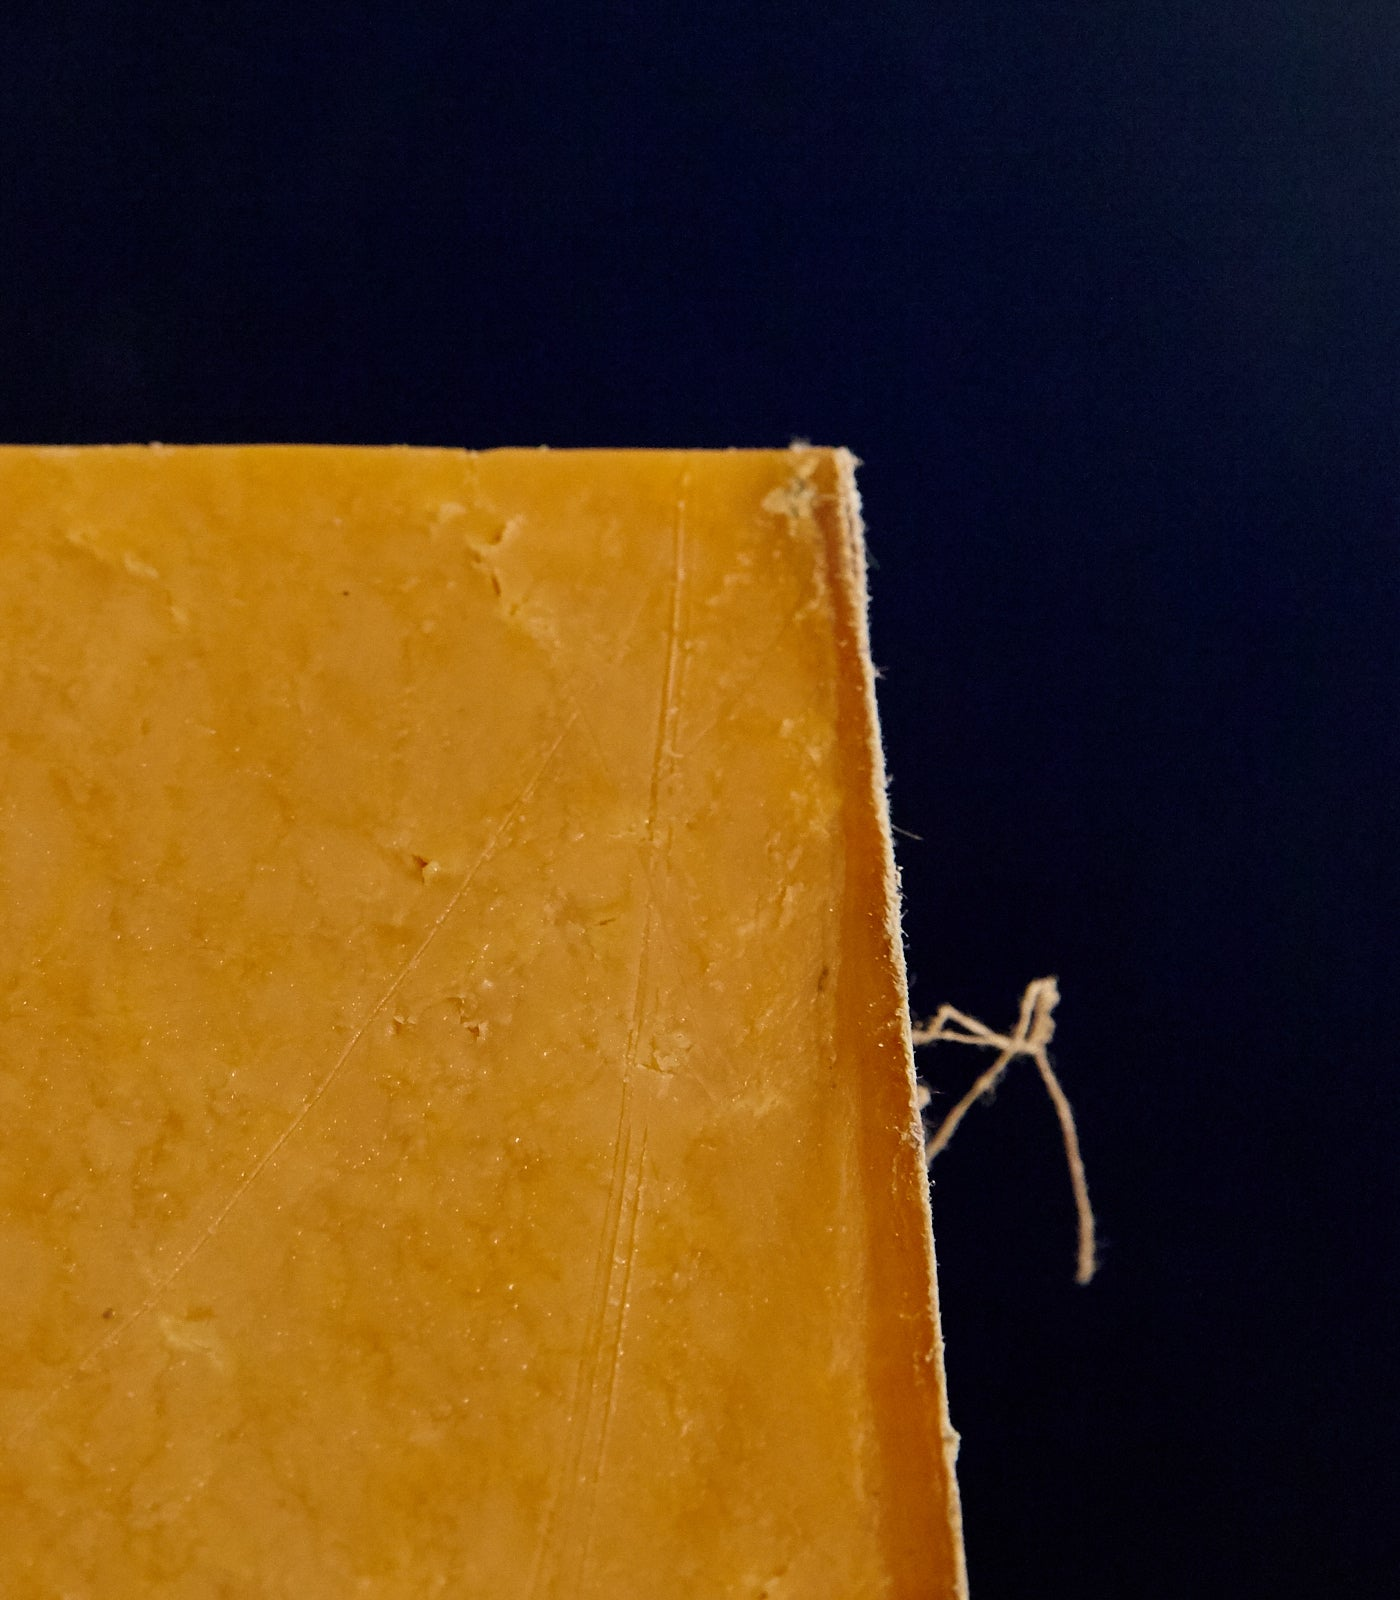 Close up of a cut piece of clothbound Sparkenhoe Red Leicester cheese showing the firm, orange coloured paste